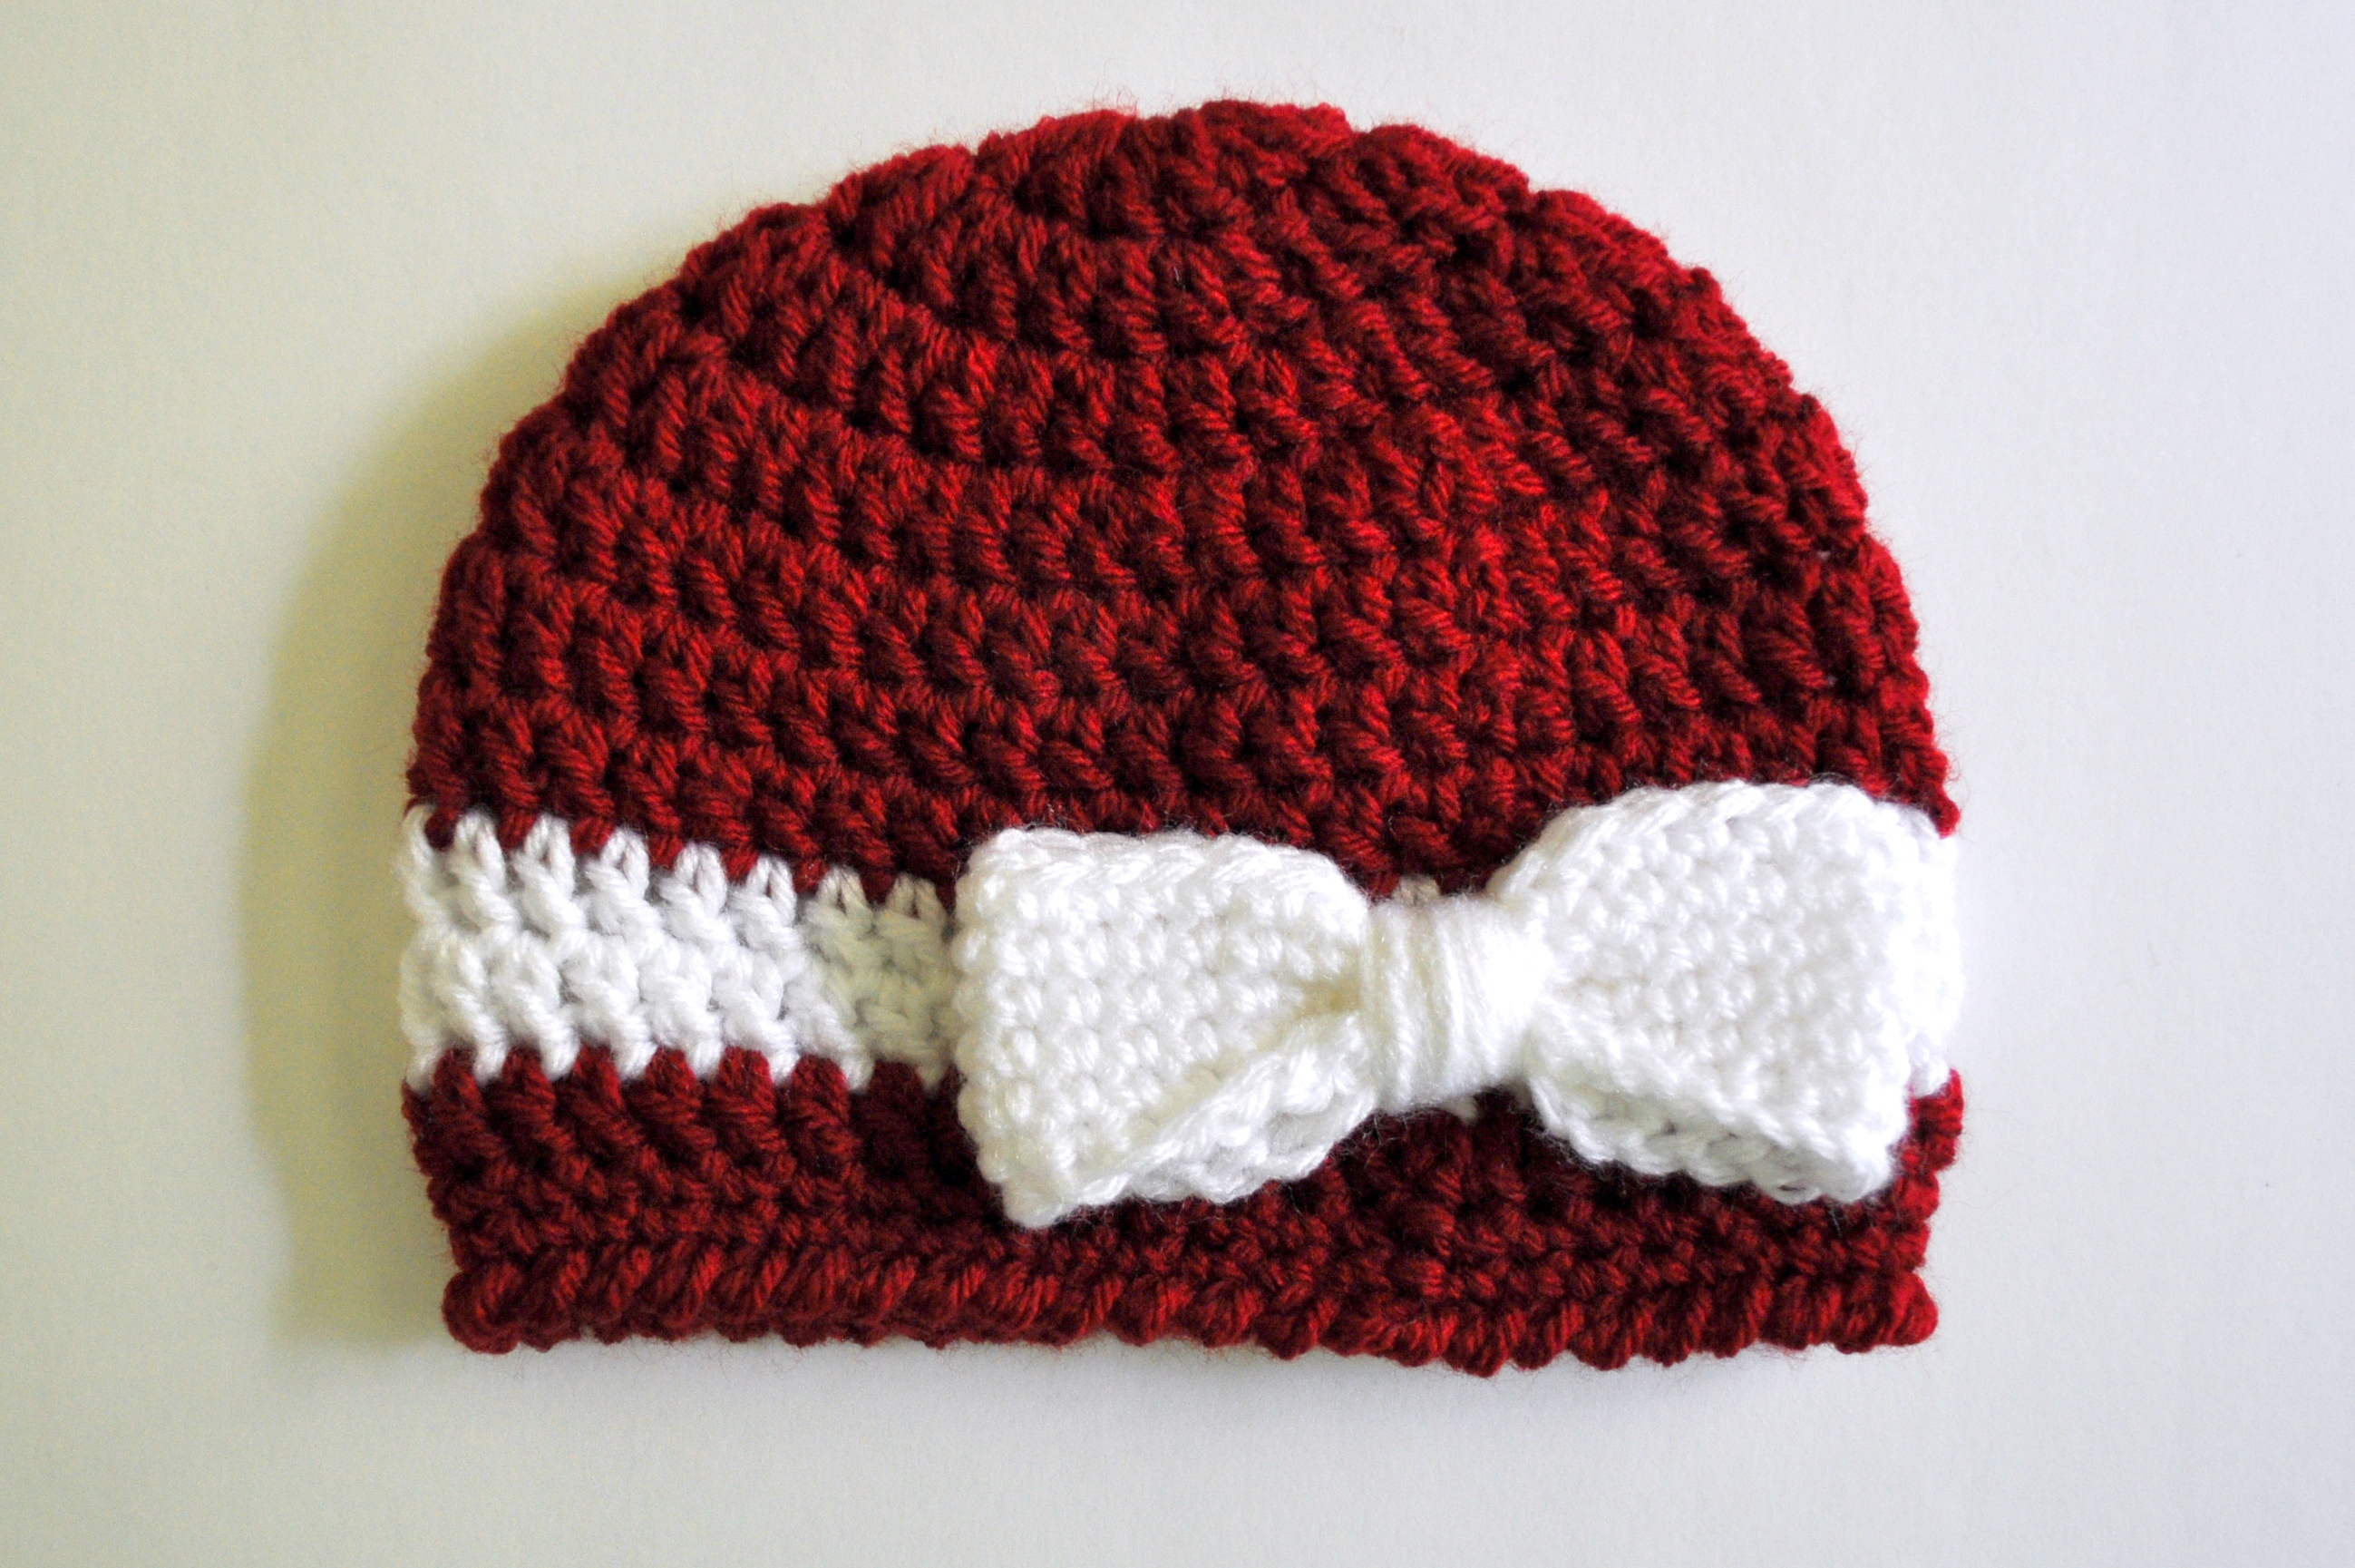 Crochet Hat Pattern With Bow : 25 Easy Crochet Bow Patterns Guide Patterns